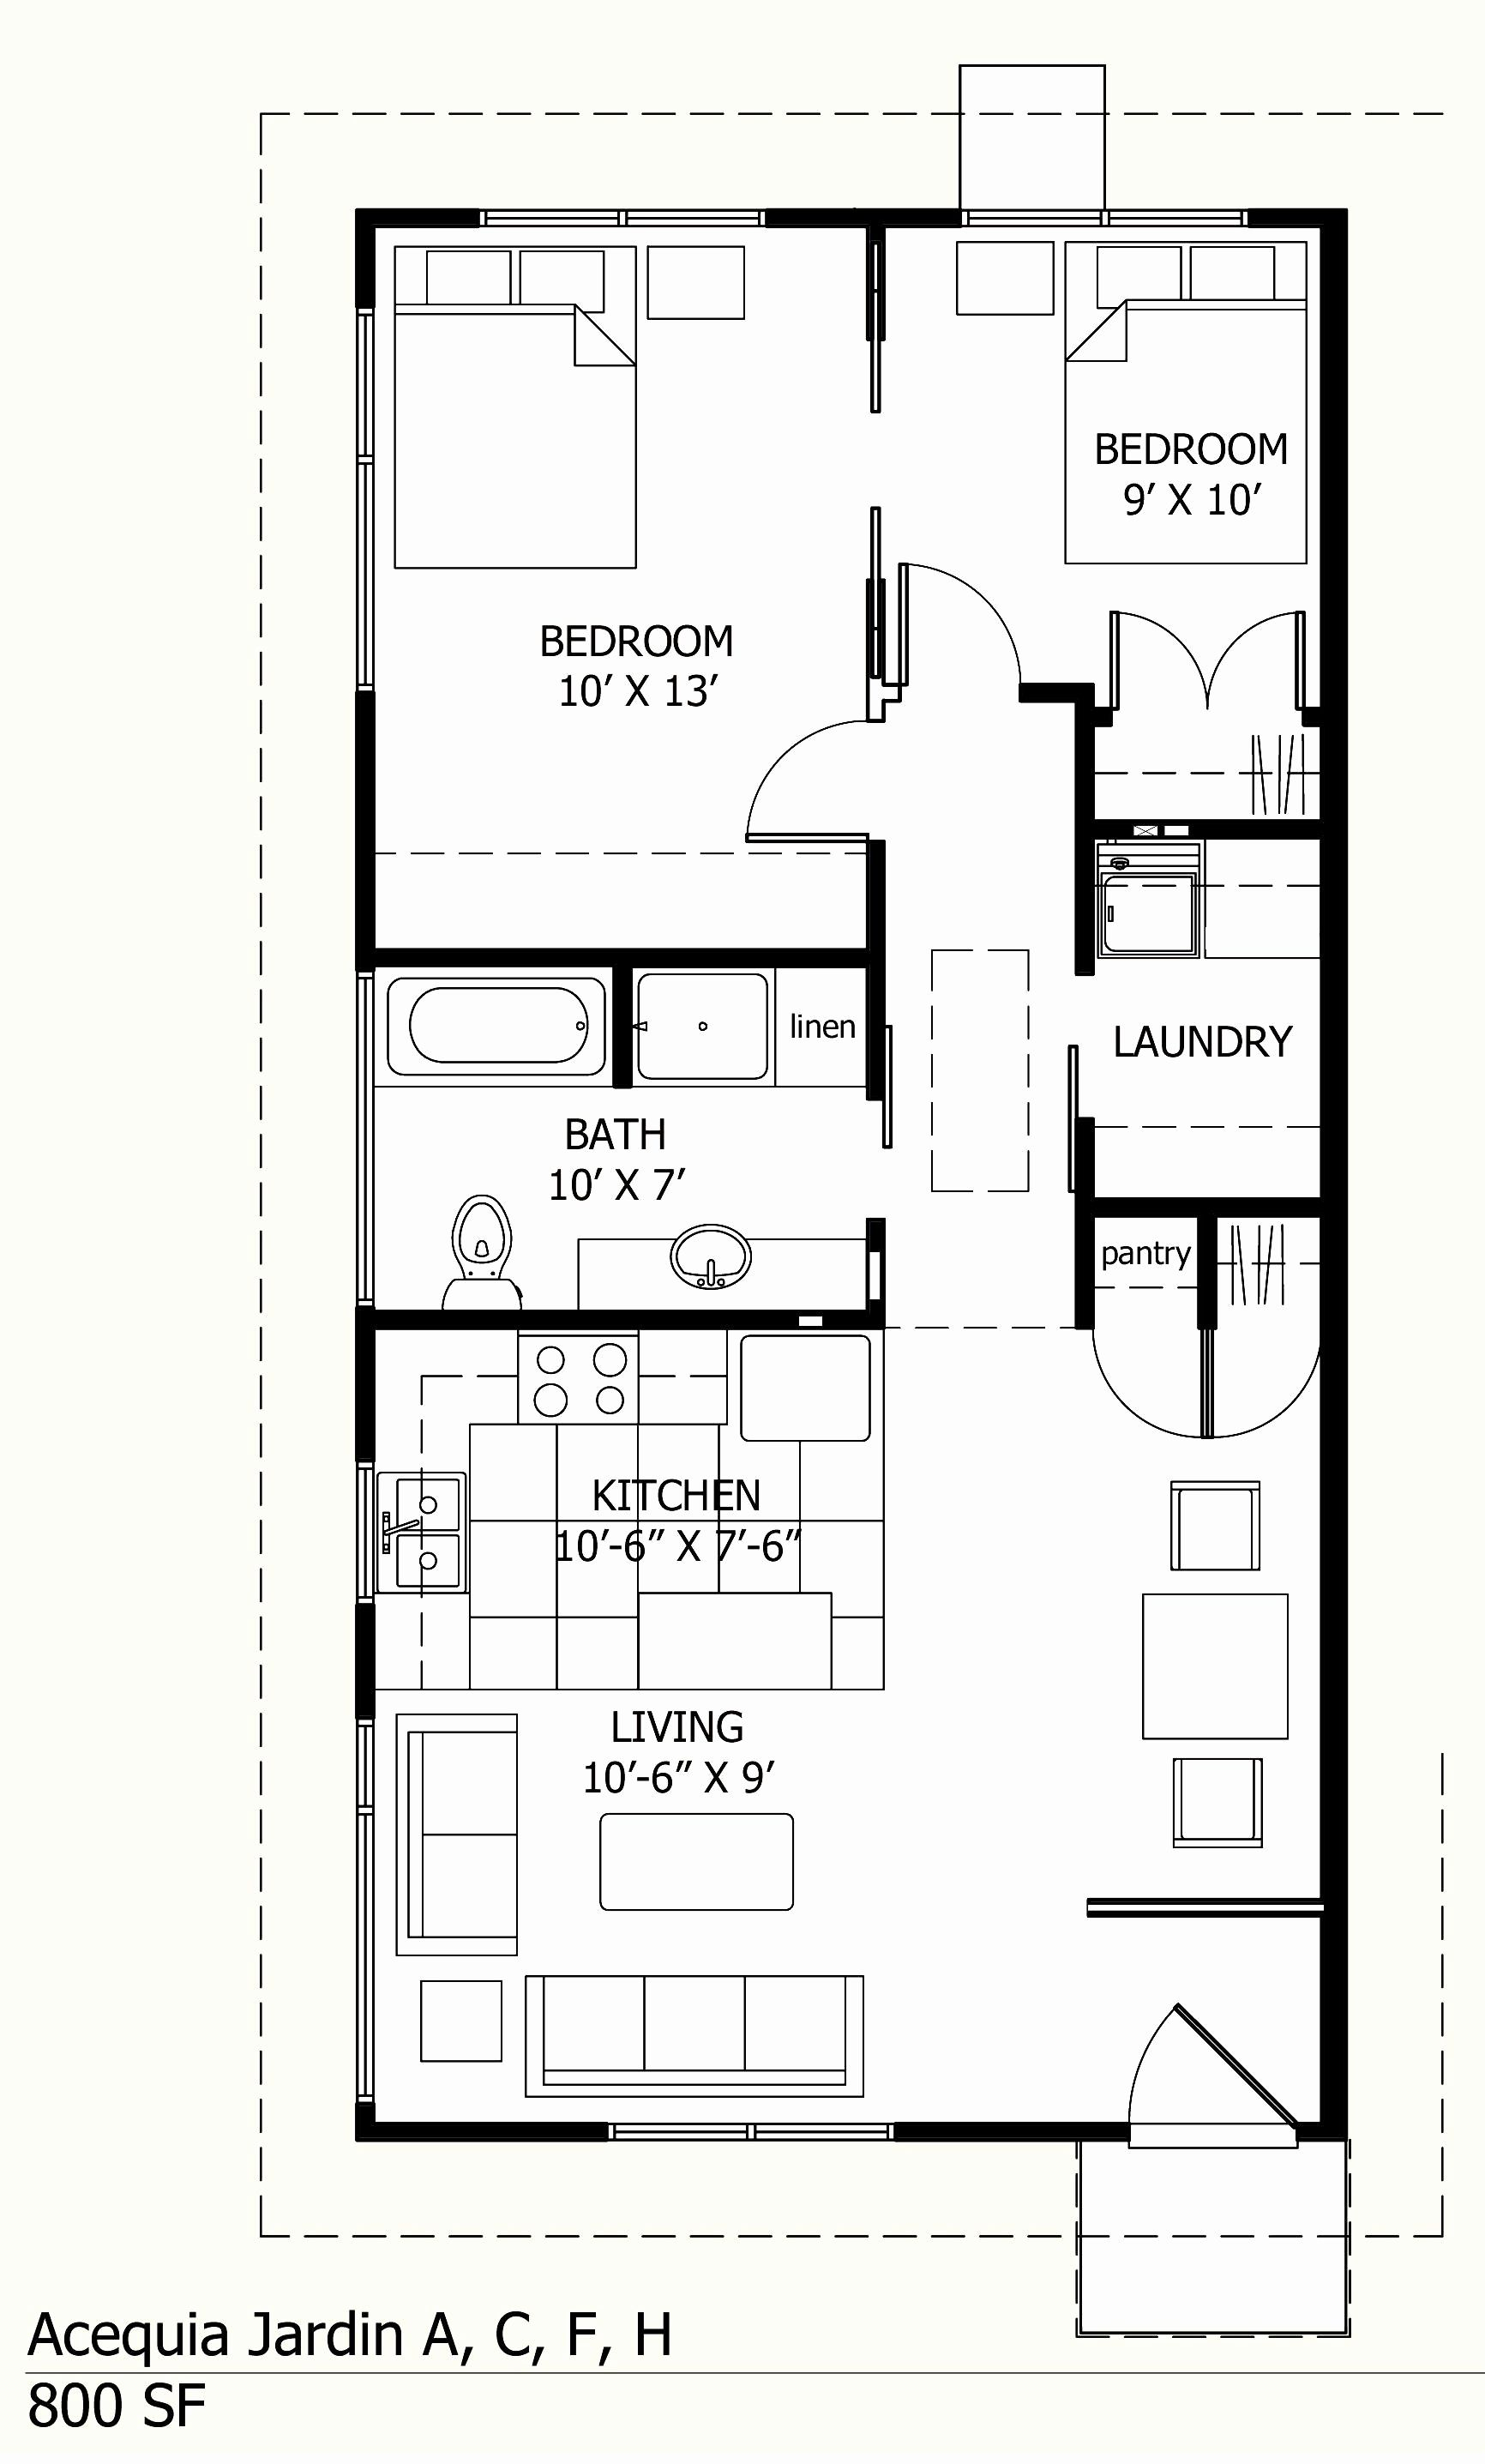 square foot house plans inspirational marvelous design ideas sq ft with loft to also rh in pinterest